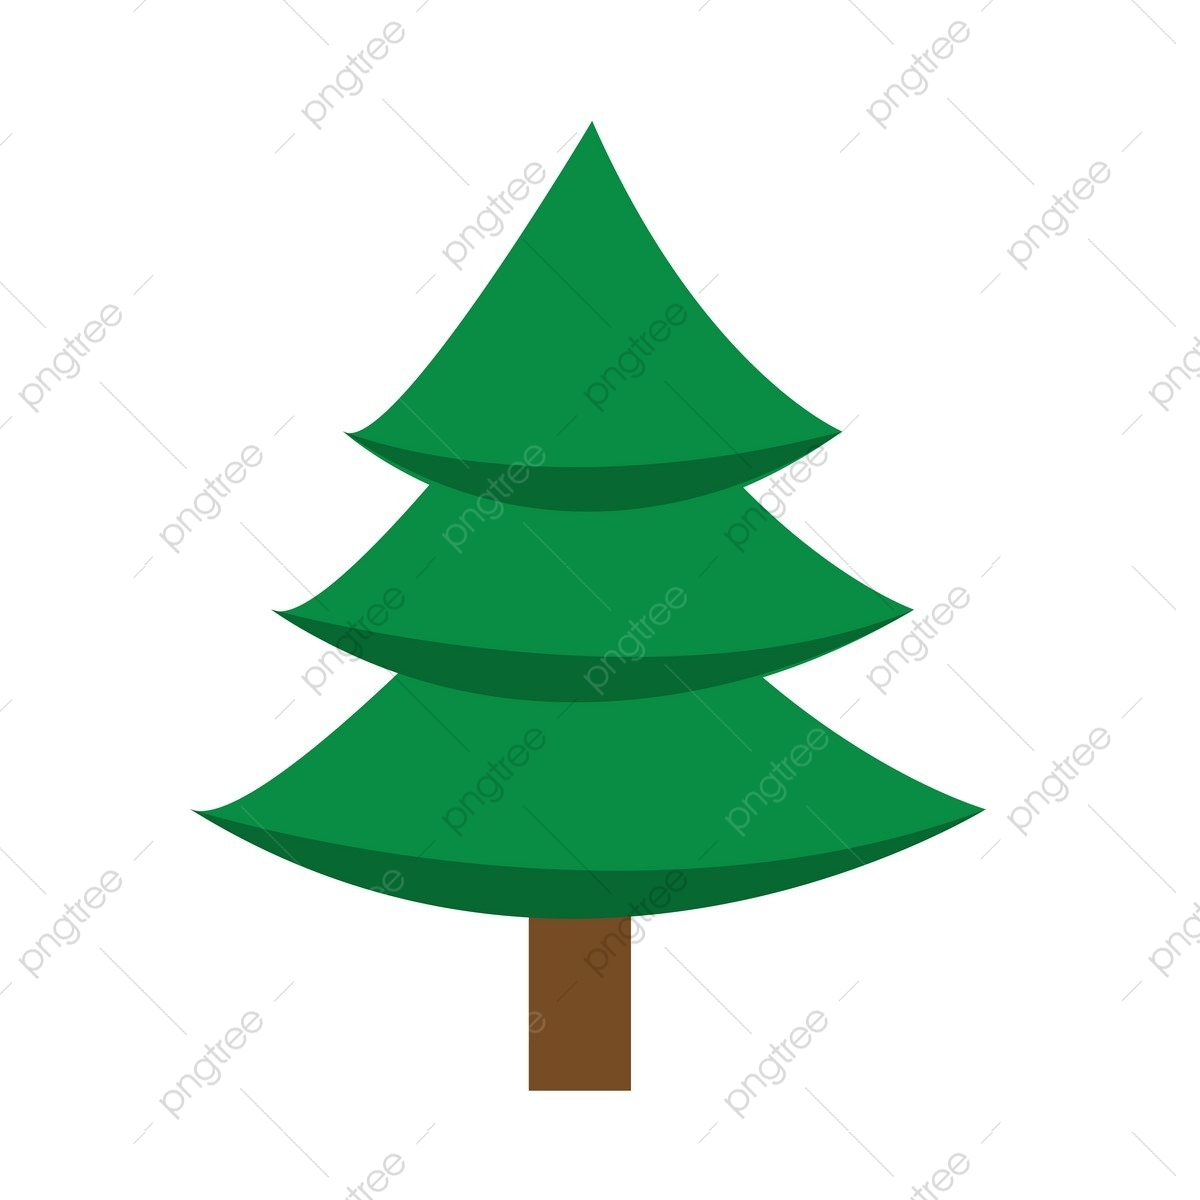 Christmas Tree Icon Png.Christmas Tree Icon Christmas Icon Illustration Png And